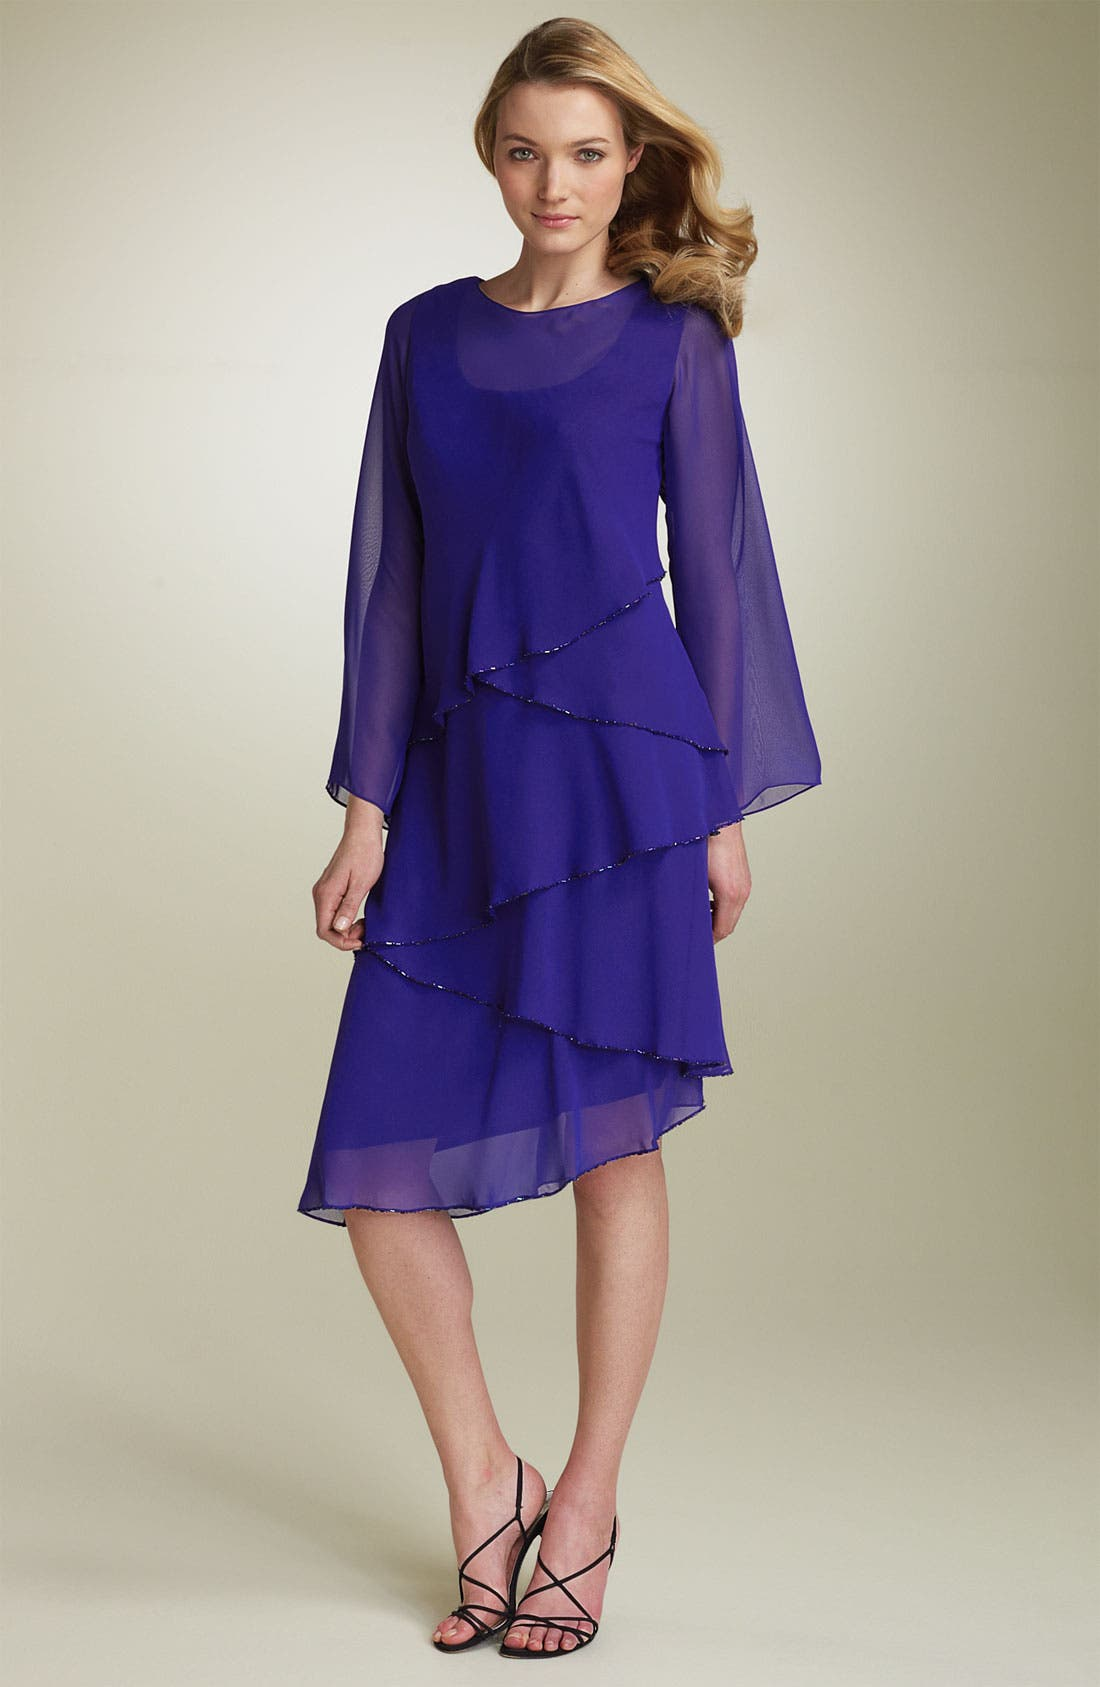 Tiered Chiffon Dress,                             Main thumbnail 1, color,                             428